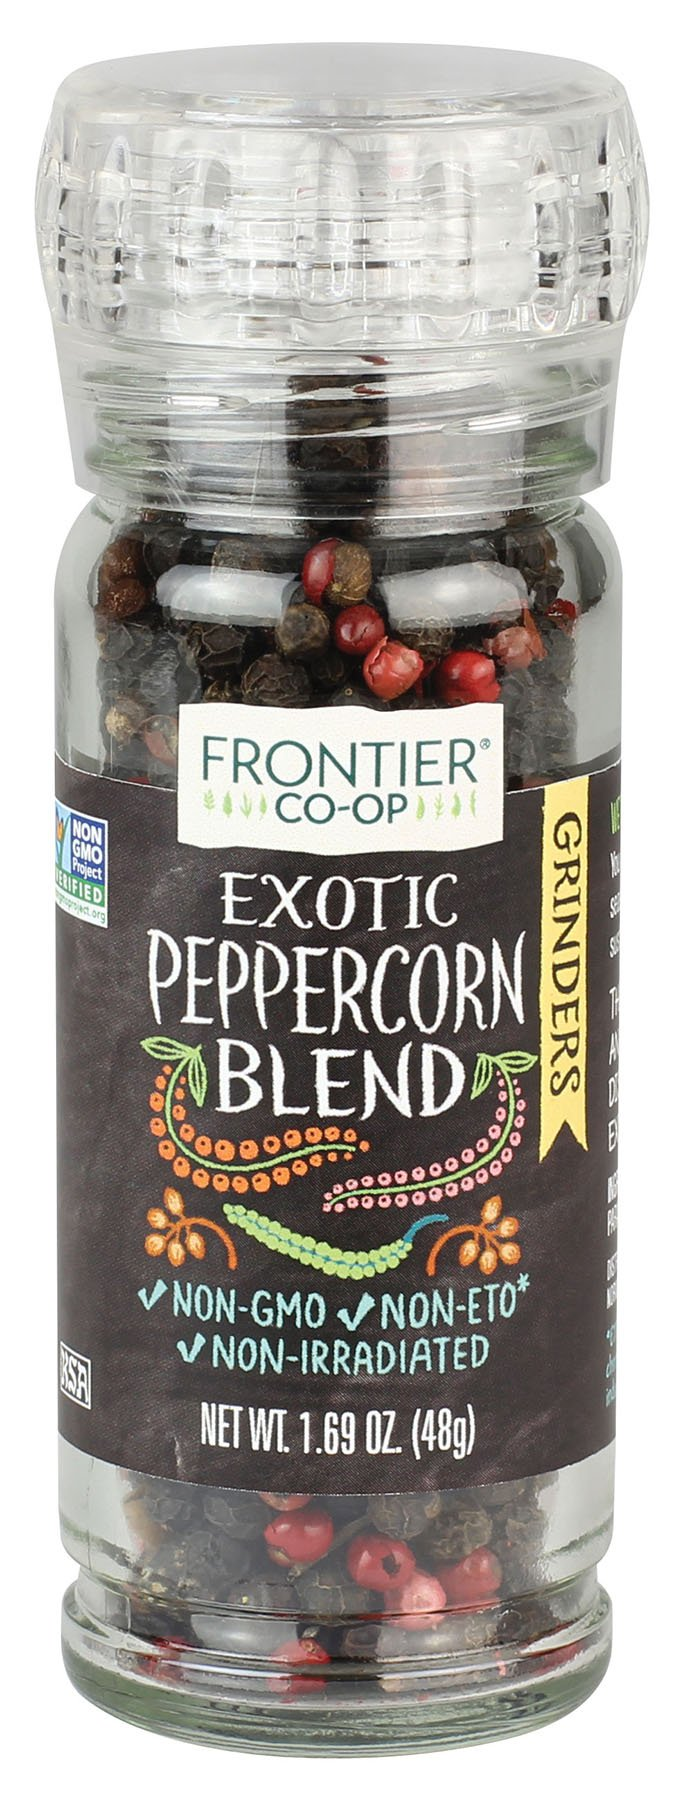 Frontier Natural Products Peppercorn Blend, Exotic, 1.69-Ounce (Pack of 3)